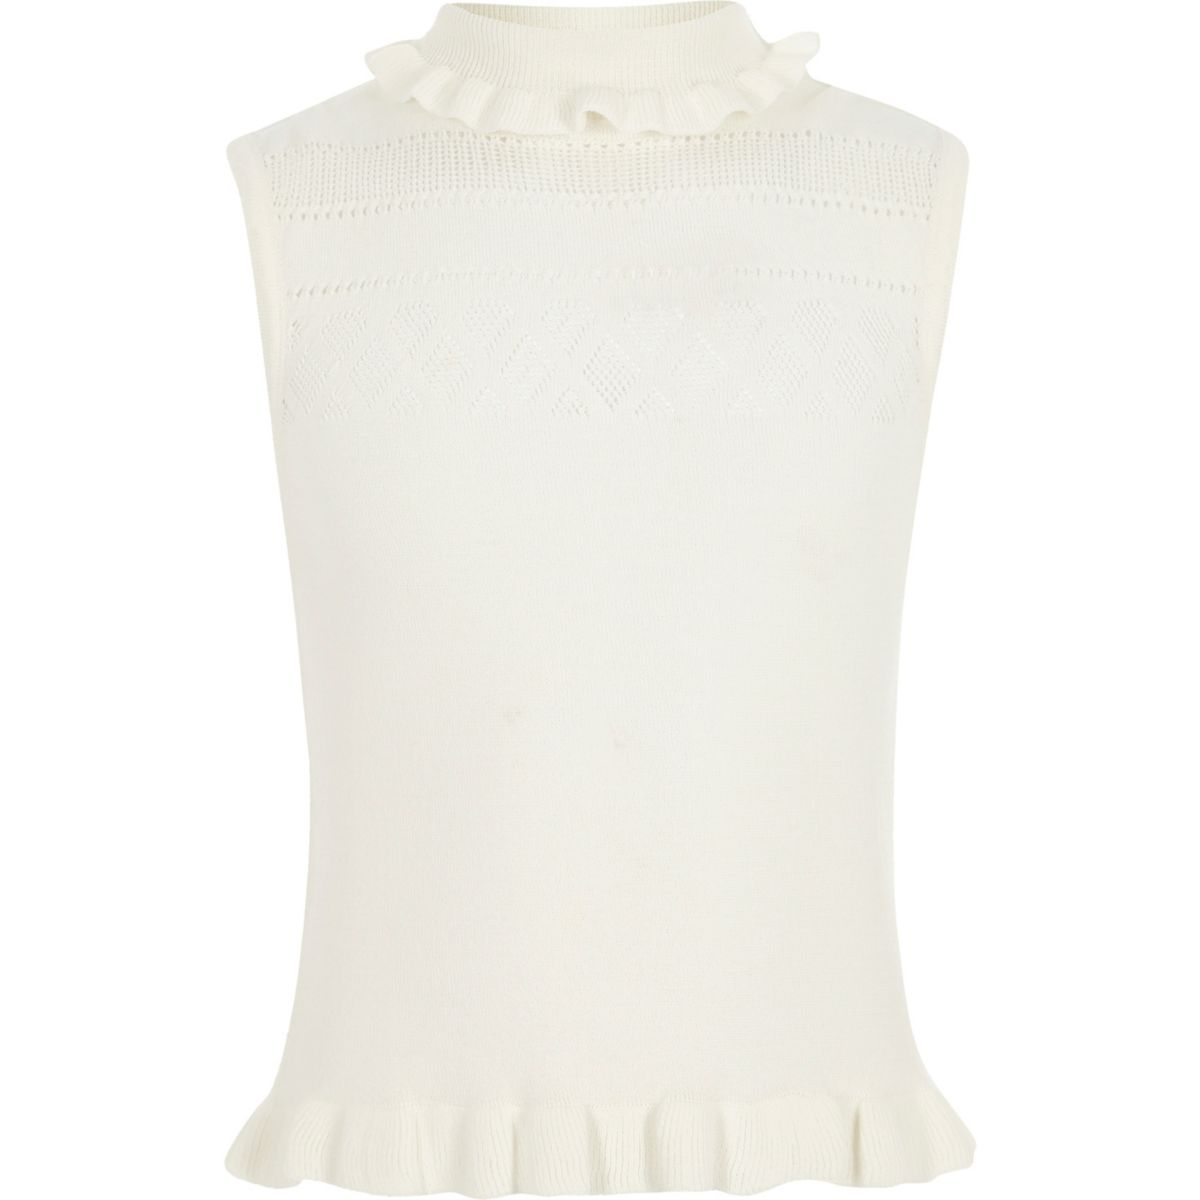 Girls cream pointelle knit sleeveless top